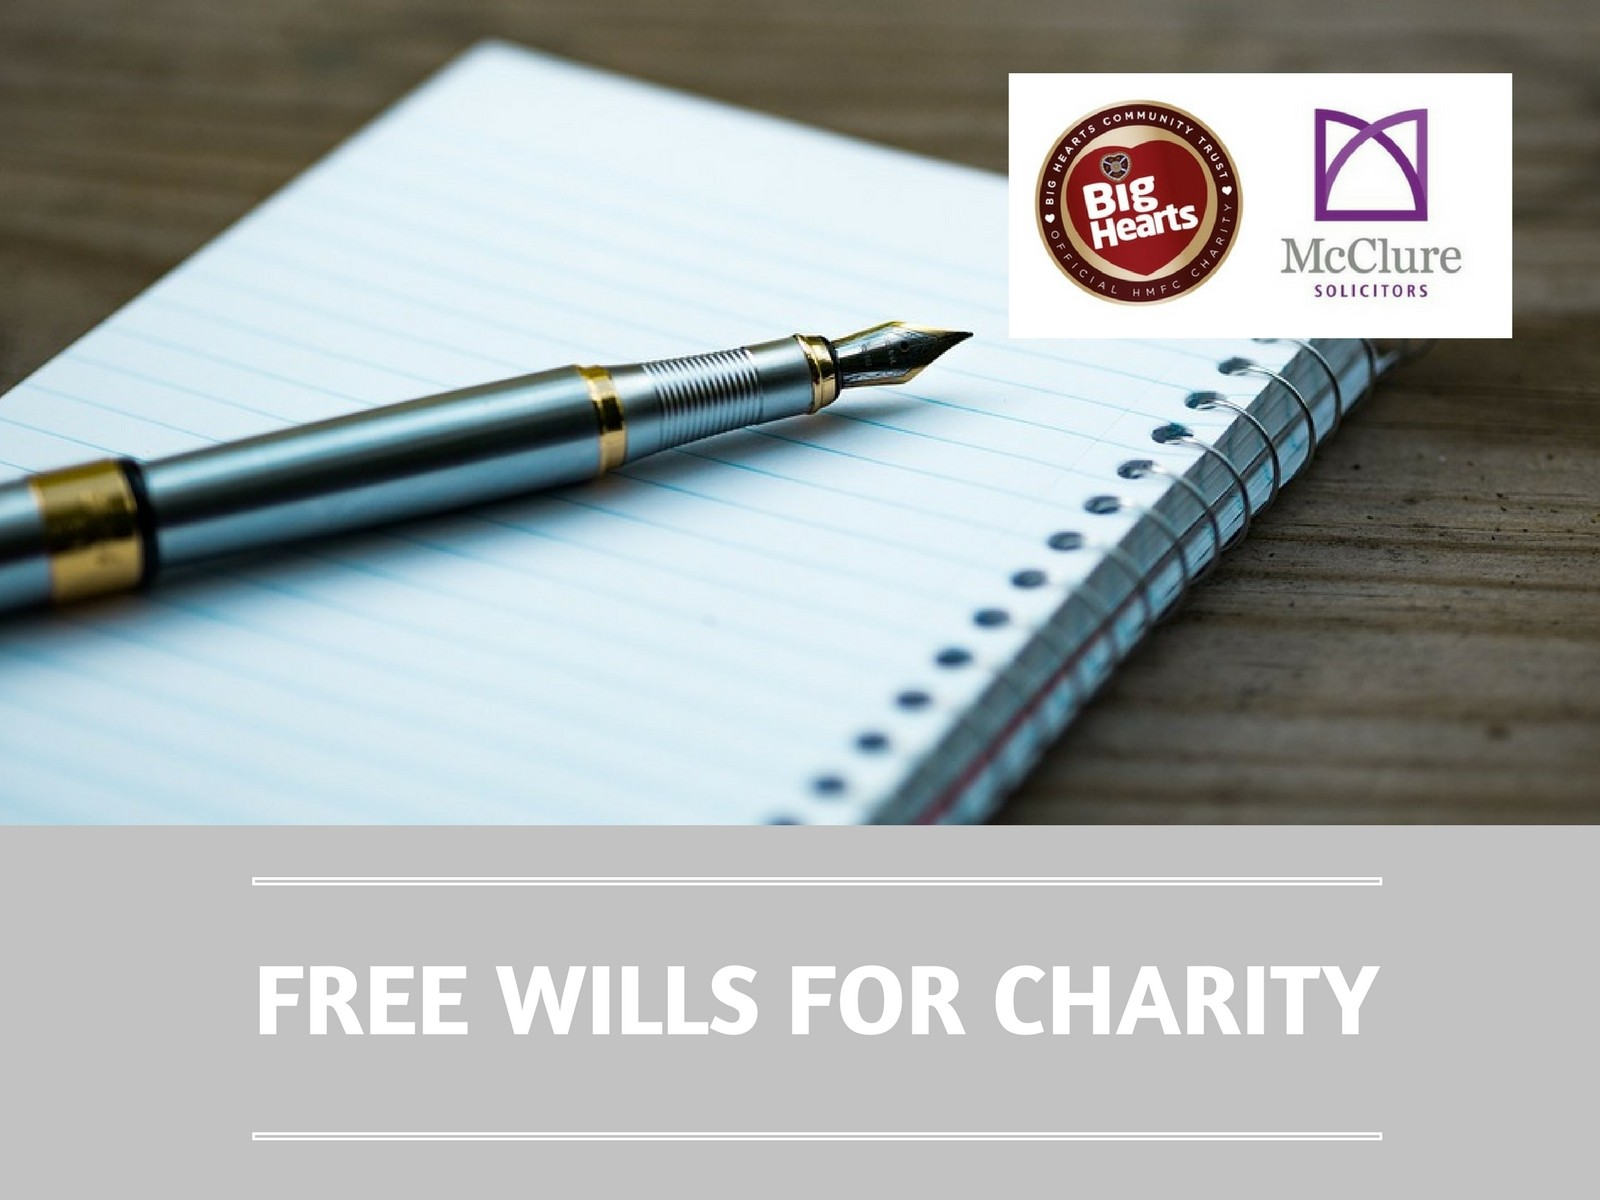 » New fundraising partnership to provide 'Free wills for charity'